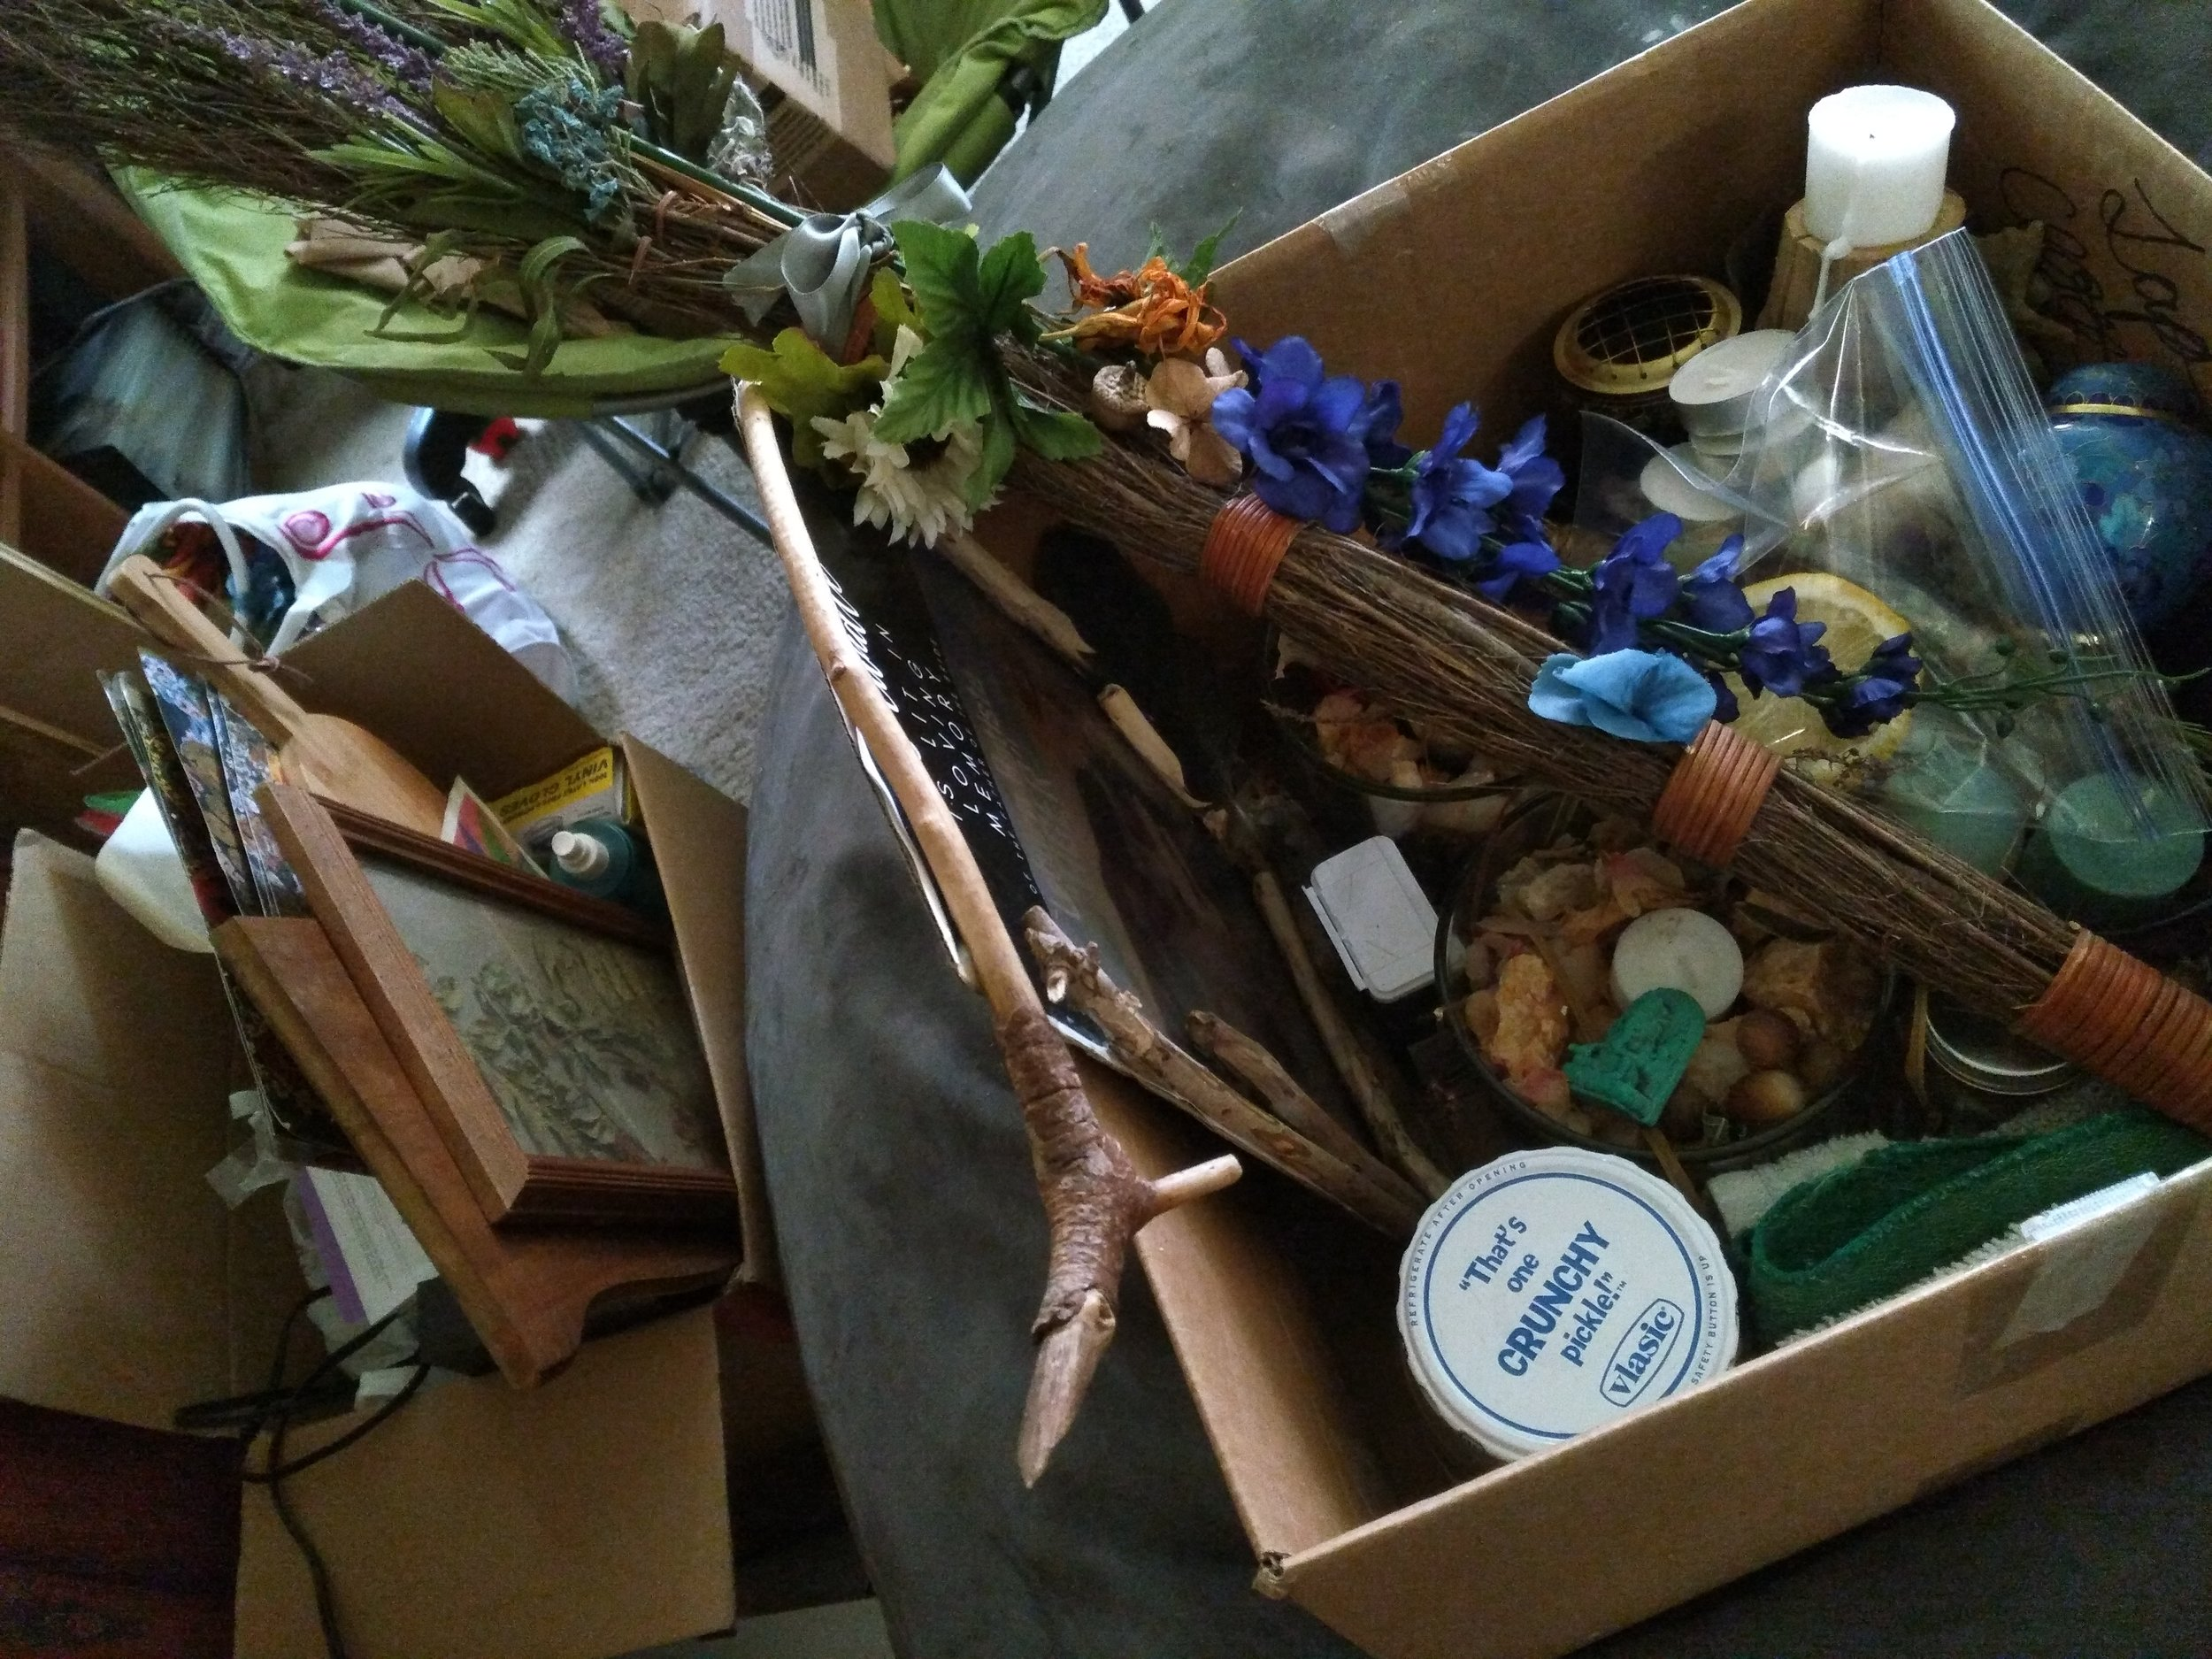 If you have a besom, be sure to pack that and bring it as well. Here again is something I made for my wedding day and decided to incorporate into my ritual. <3